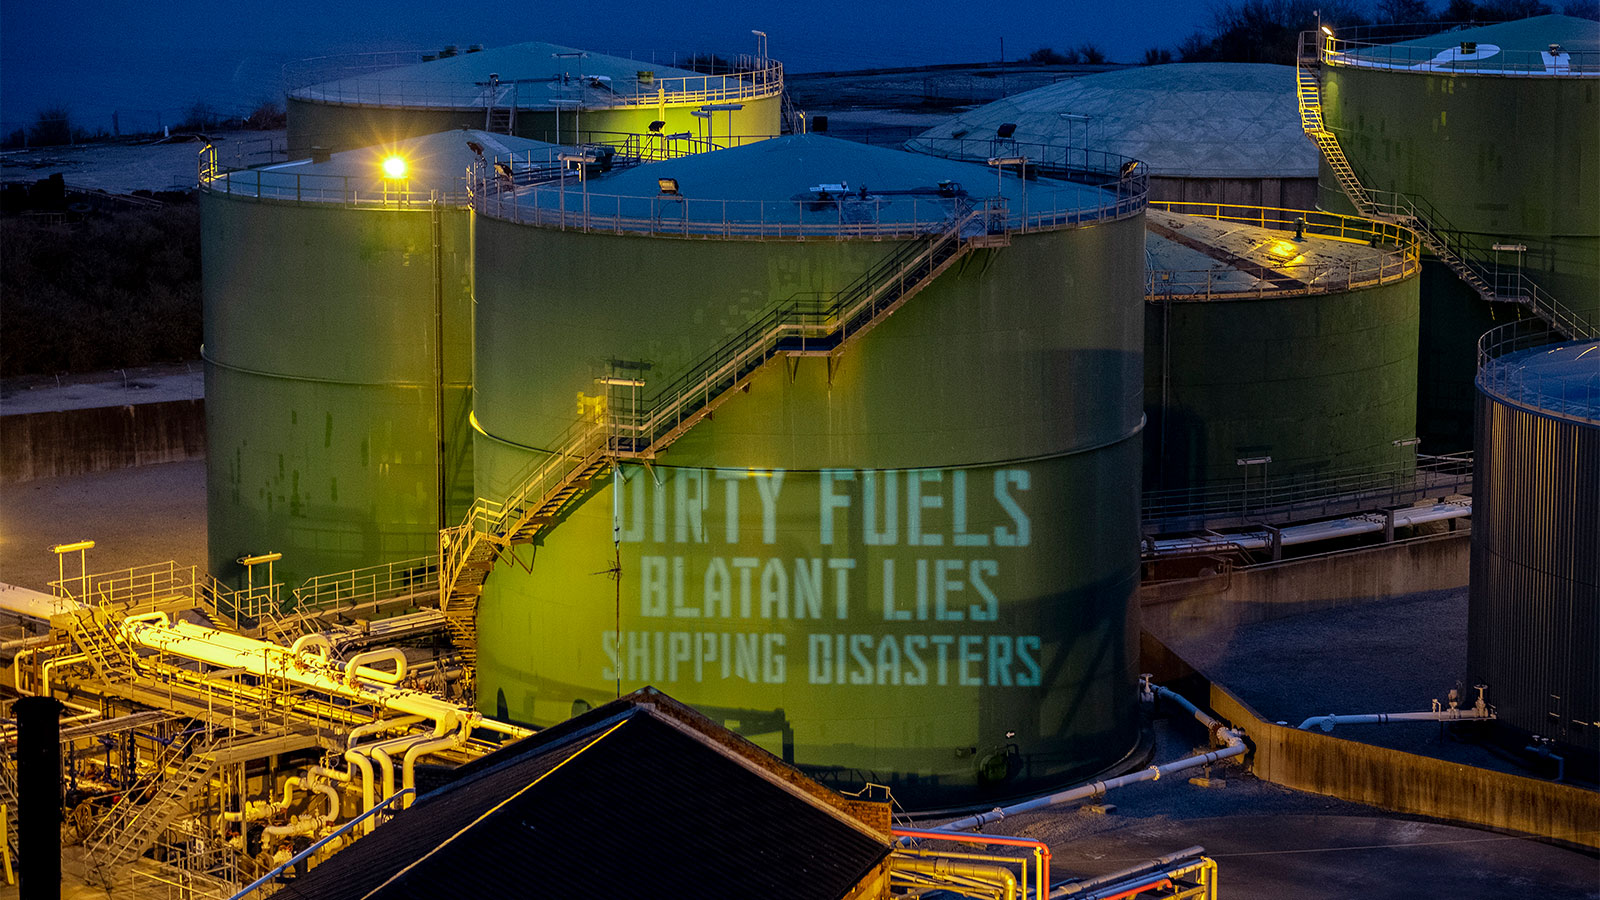 A projected slogan protesting the fuel shipping industry